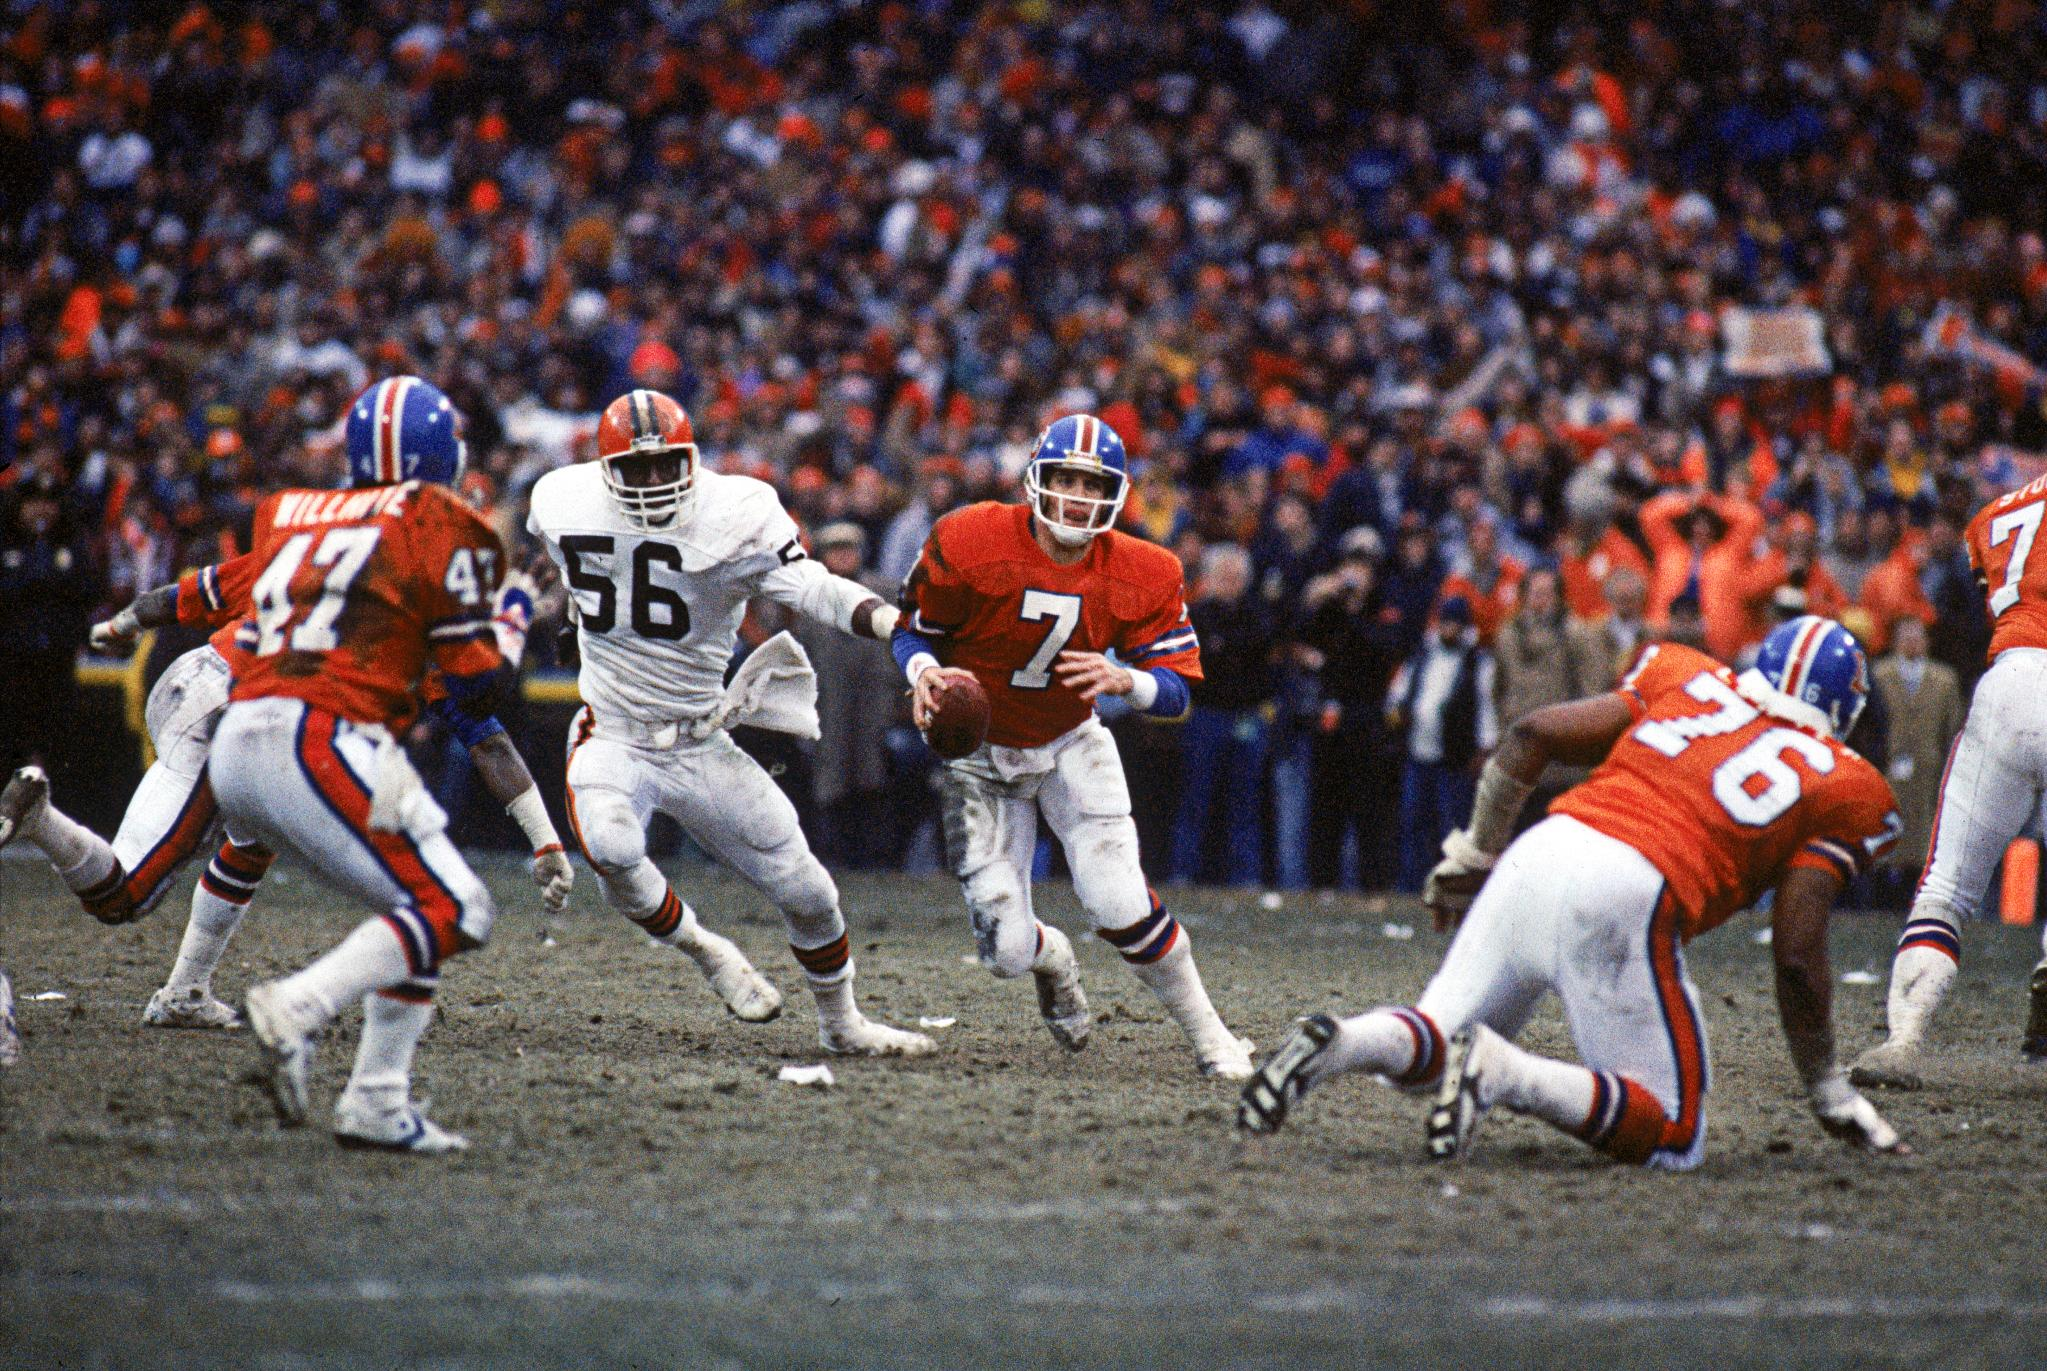 30 years ago today, John Elway led the Broncos on The Drive. https://t.co/jezF9jITY6